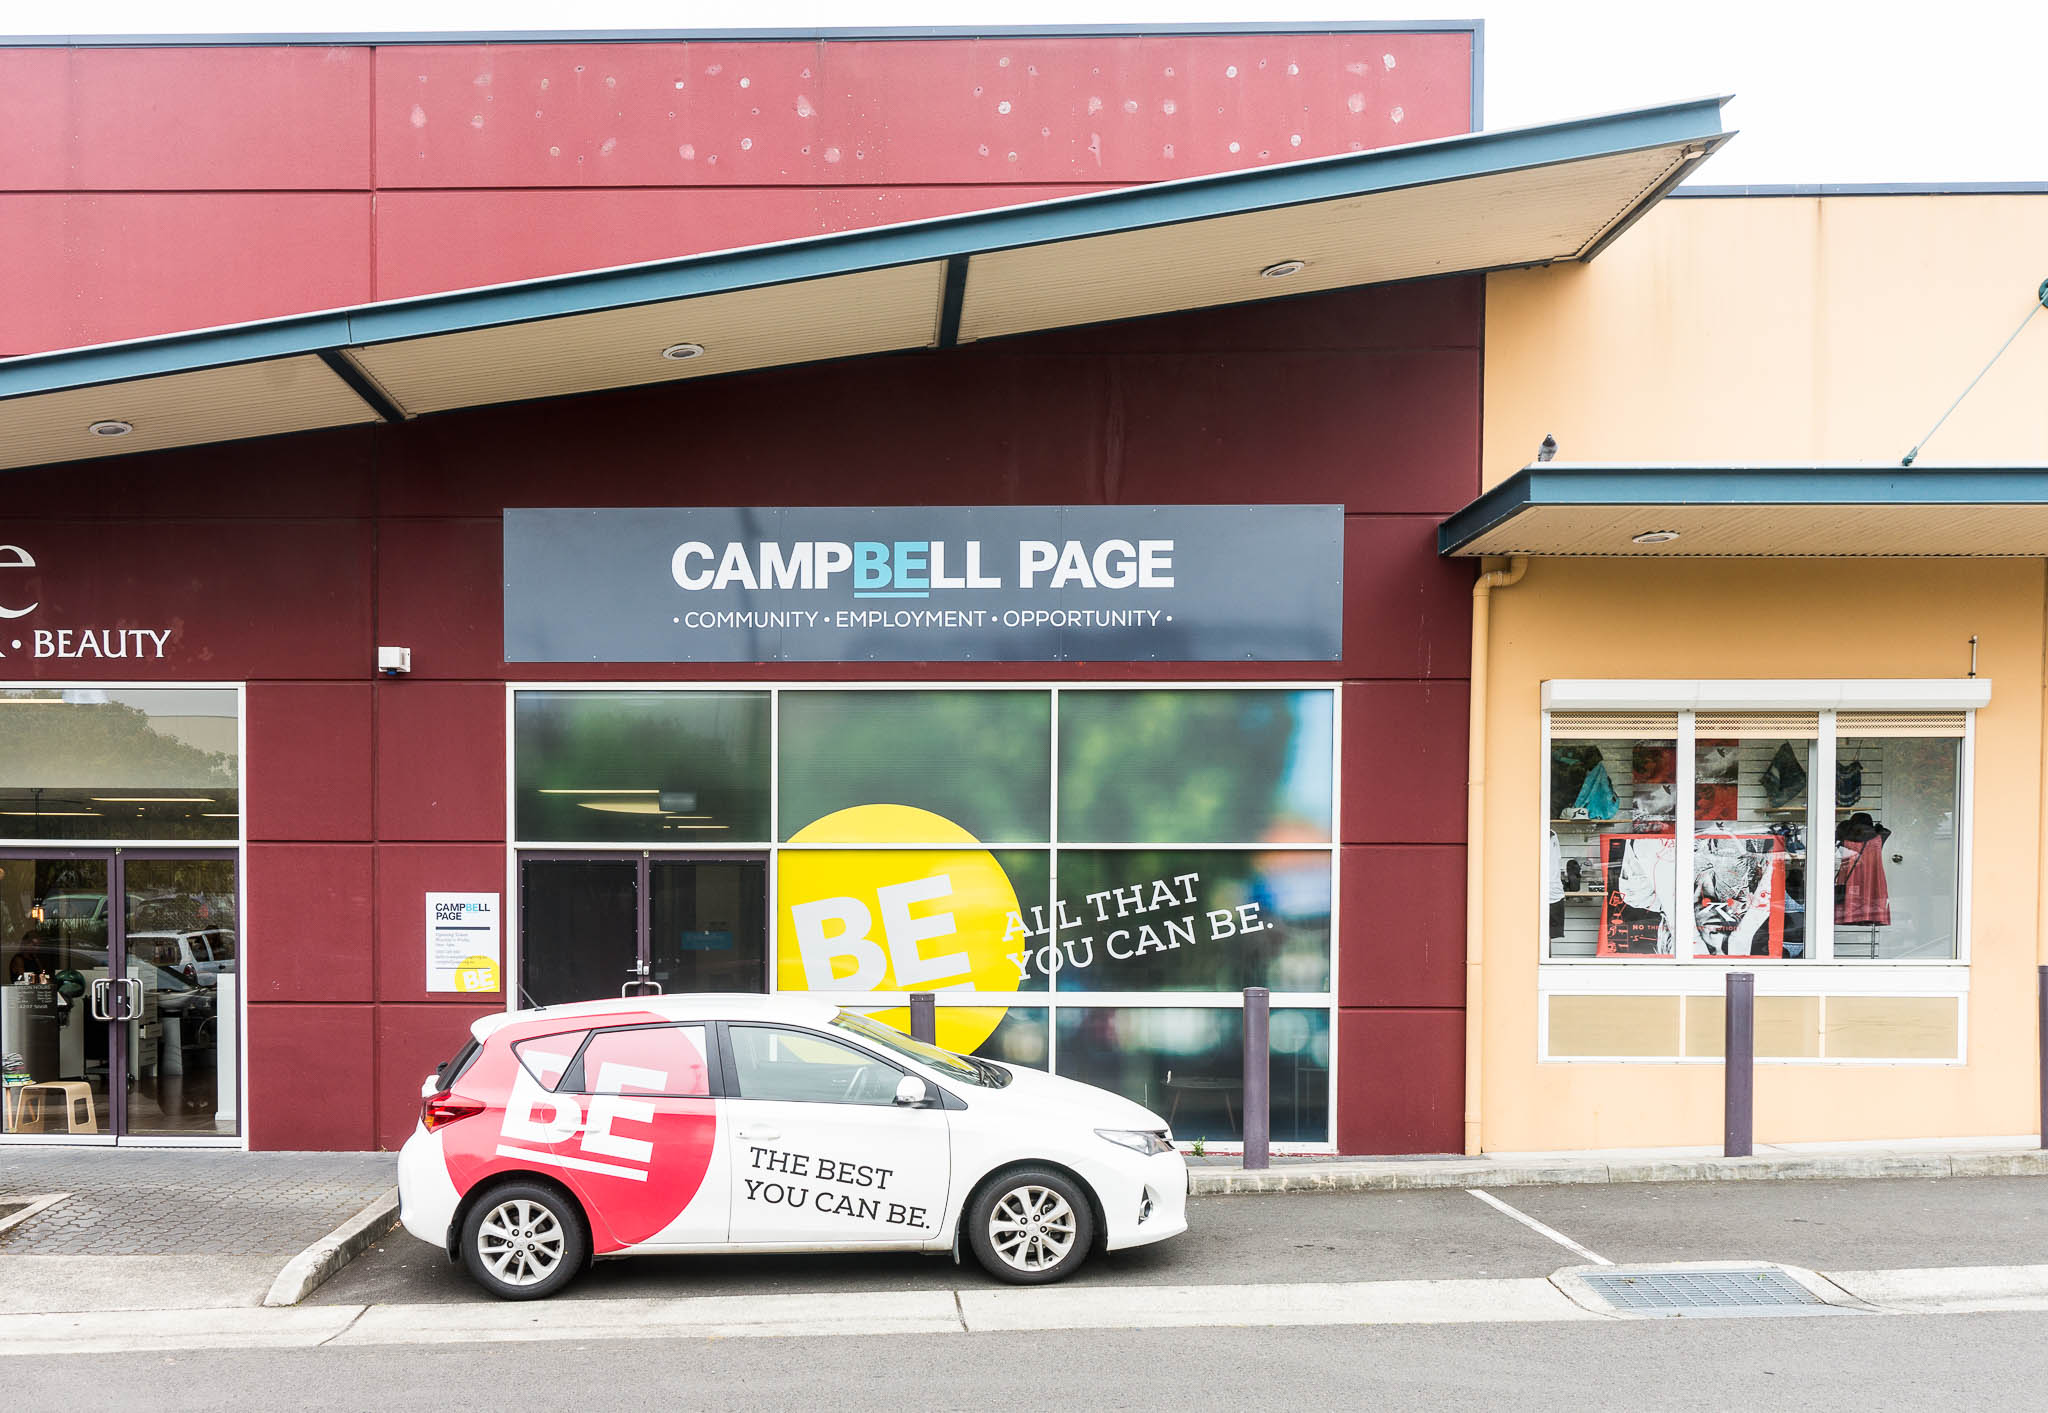 campbell page signage by think creative agency